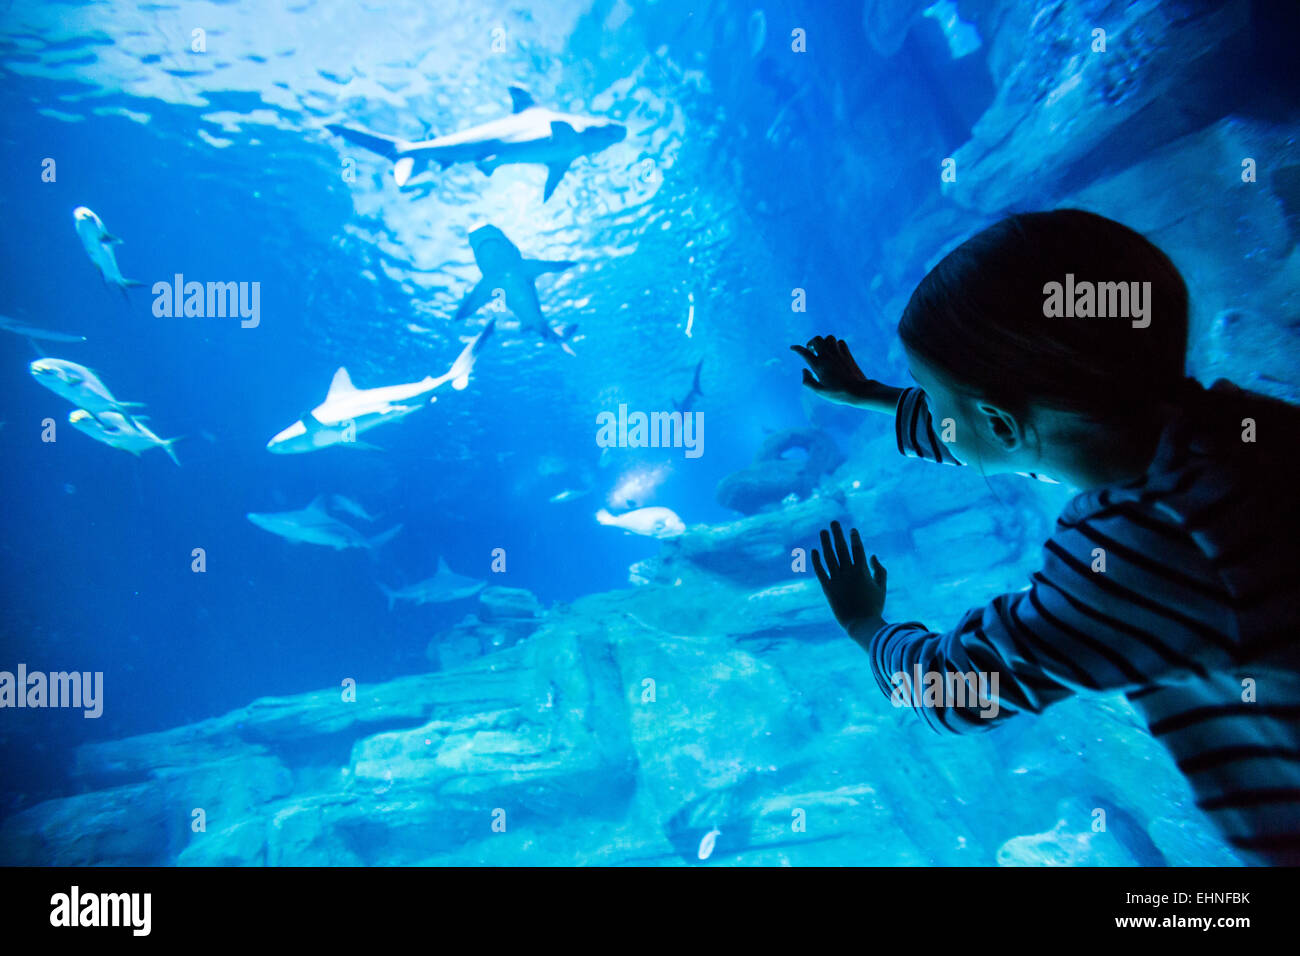 7 year-old girl watching fishes in an aquarium. Stock Photo